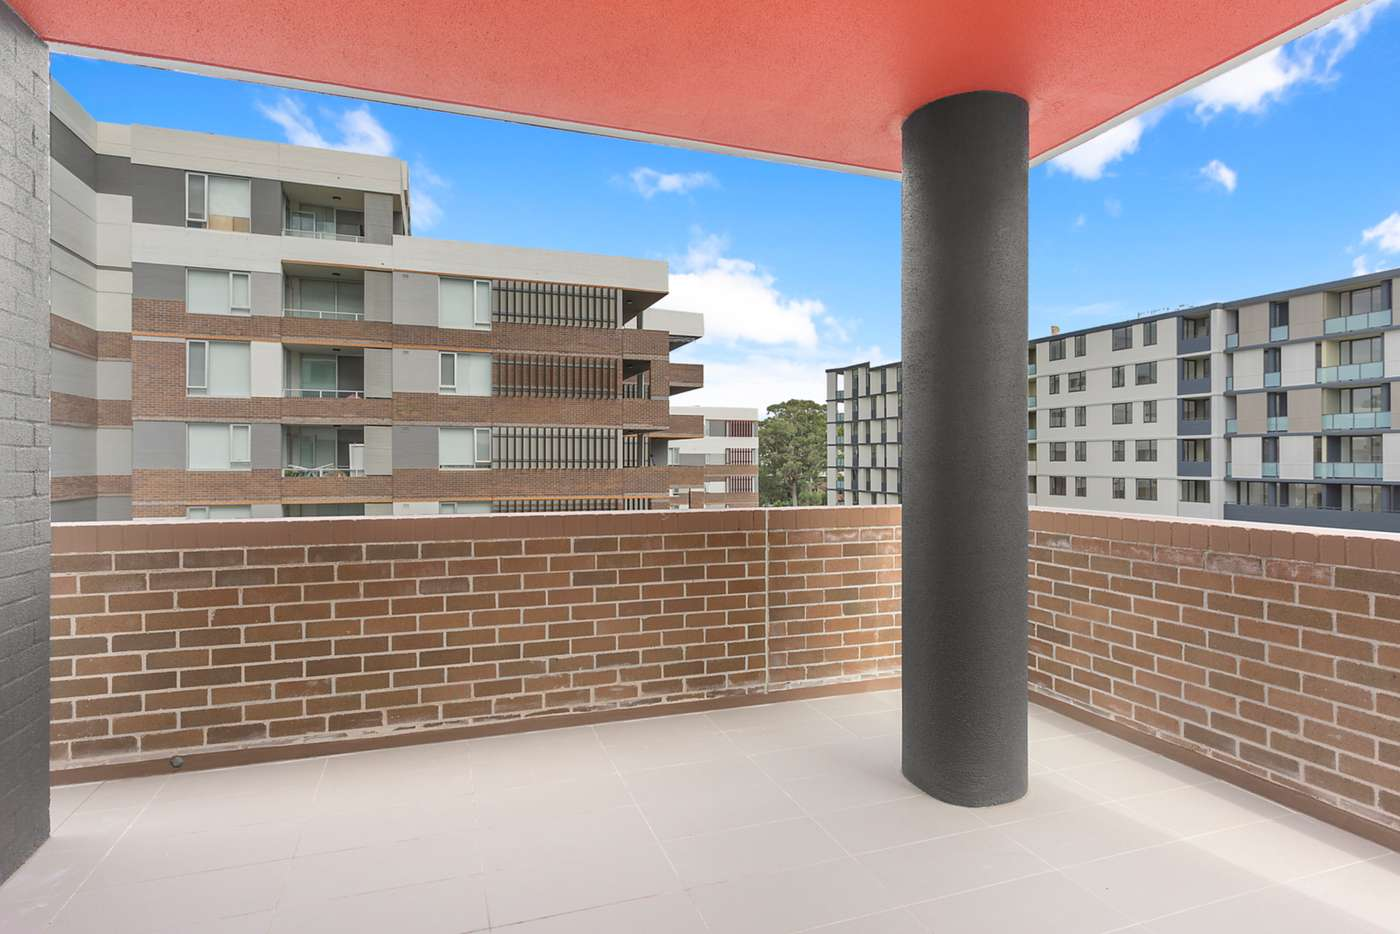 Main view of Homely apartment listing, 504/11A Washington Avenue, Riverwood NSW 2210